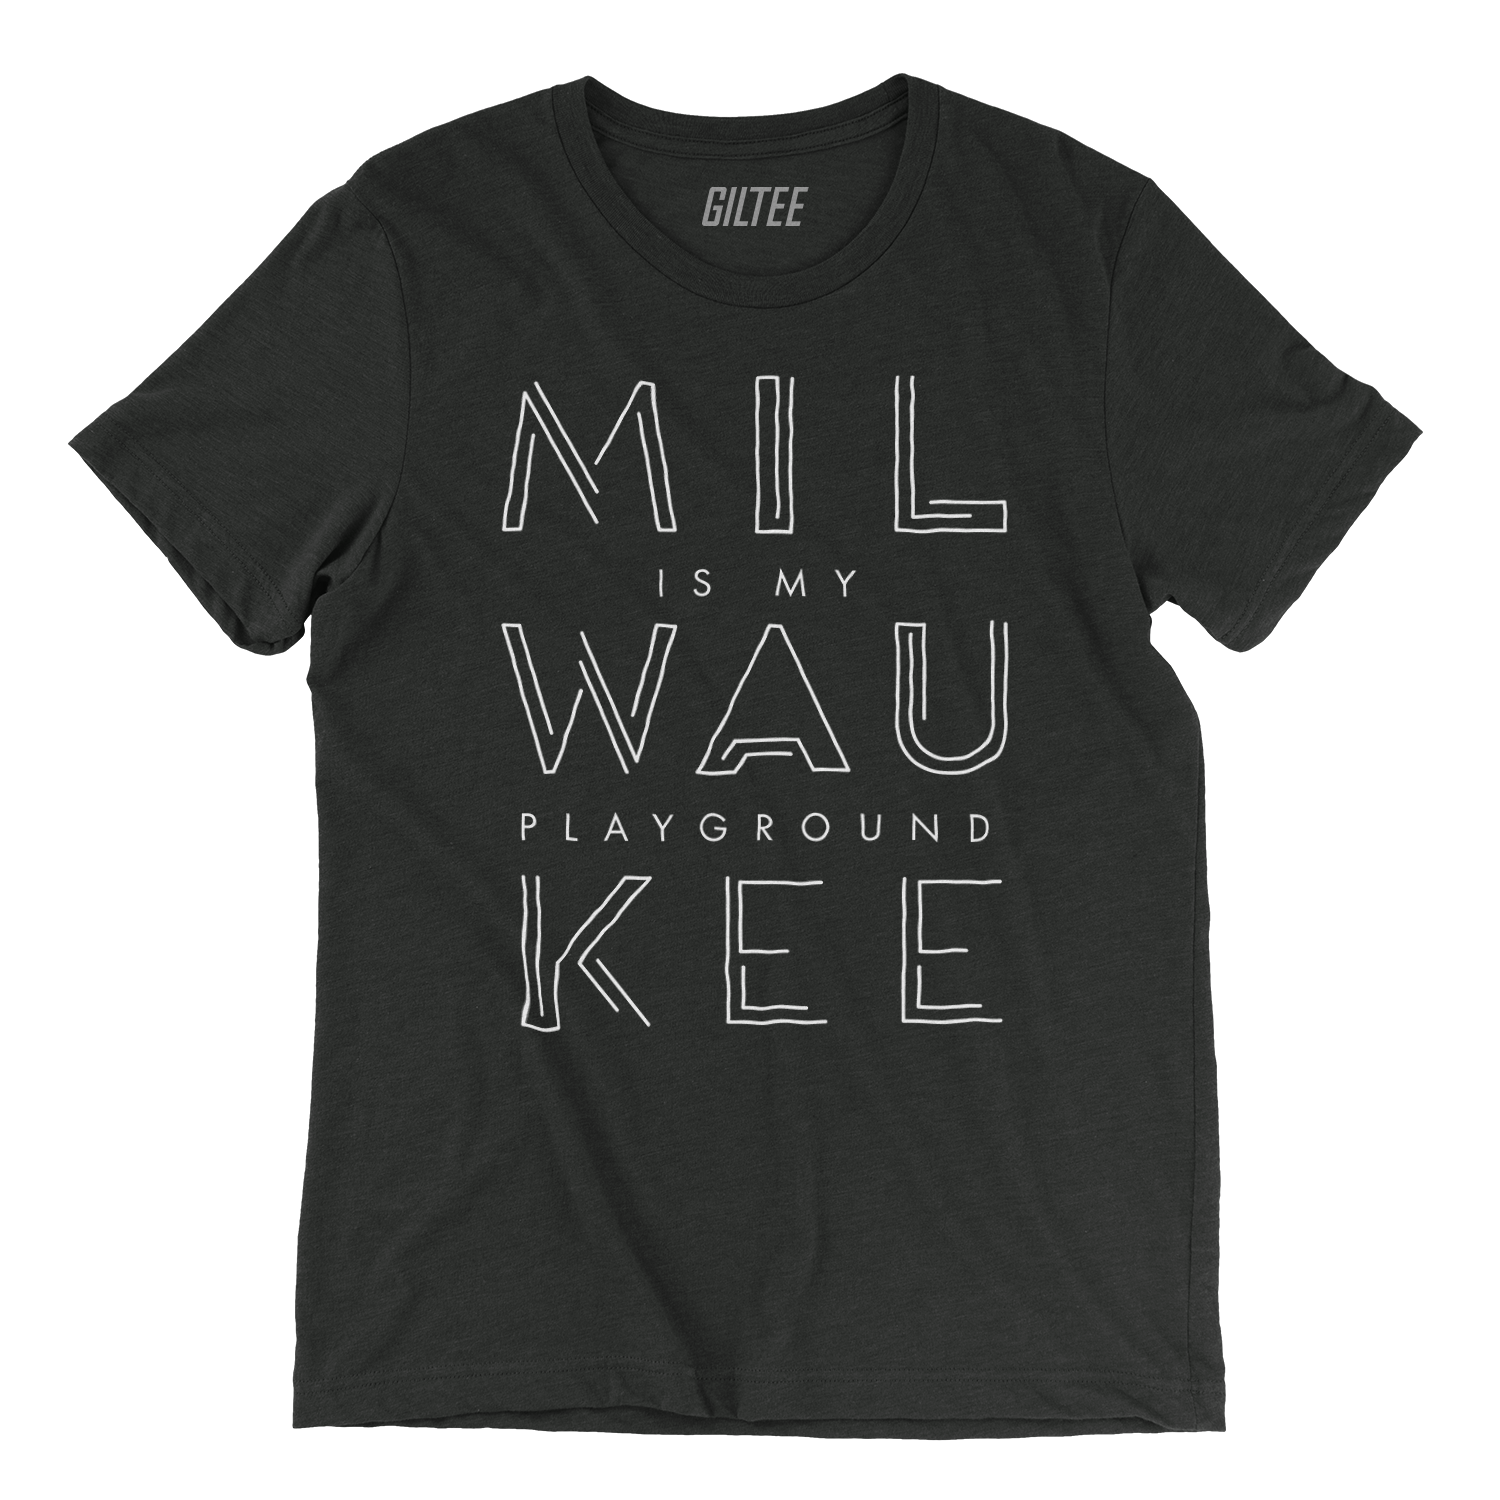 The Milwaukee Pipeline Charcoal Unisex Triblend Tee